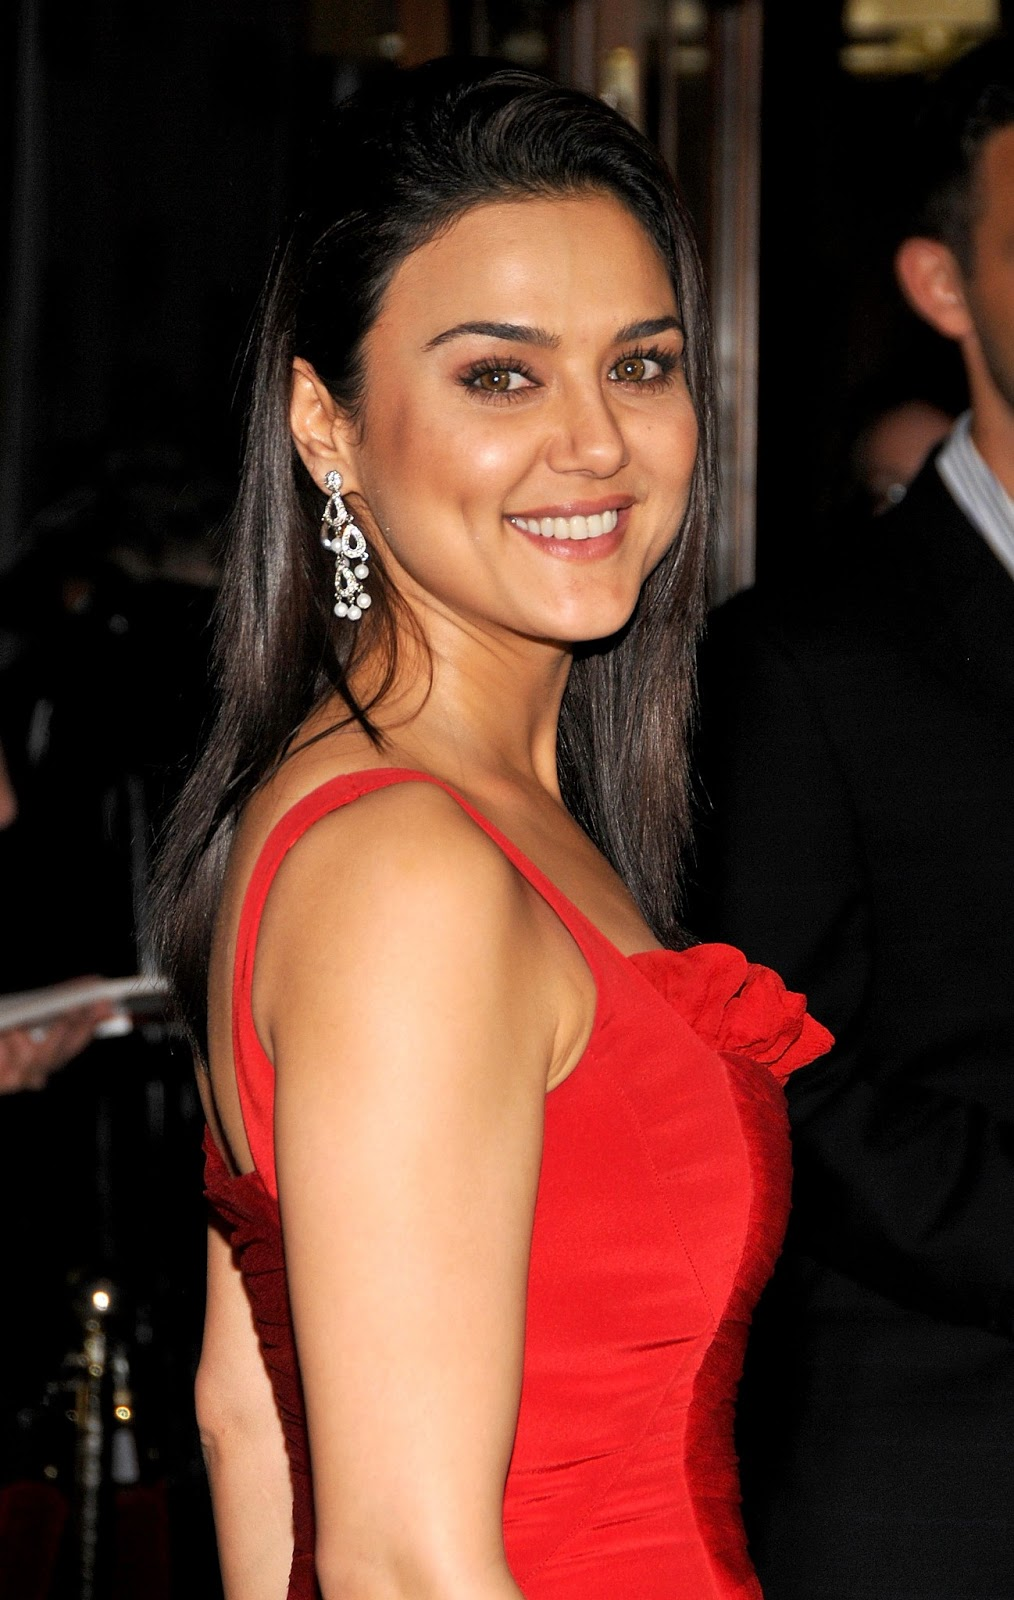 Preity Zinta Hot Photo Shoot Free Download 2013 -3880